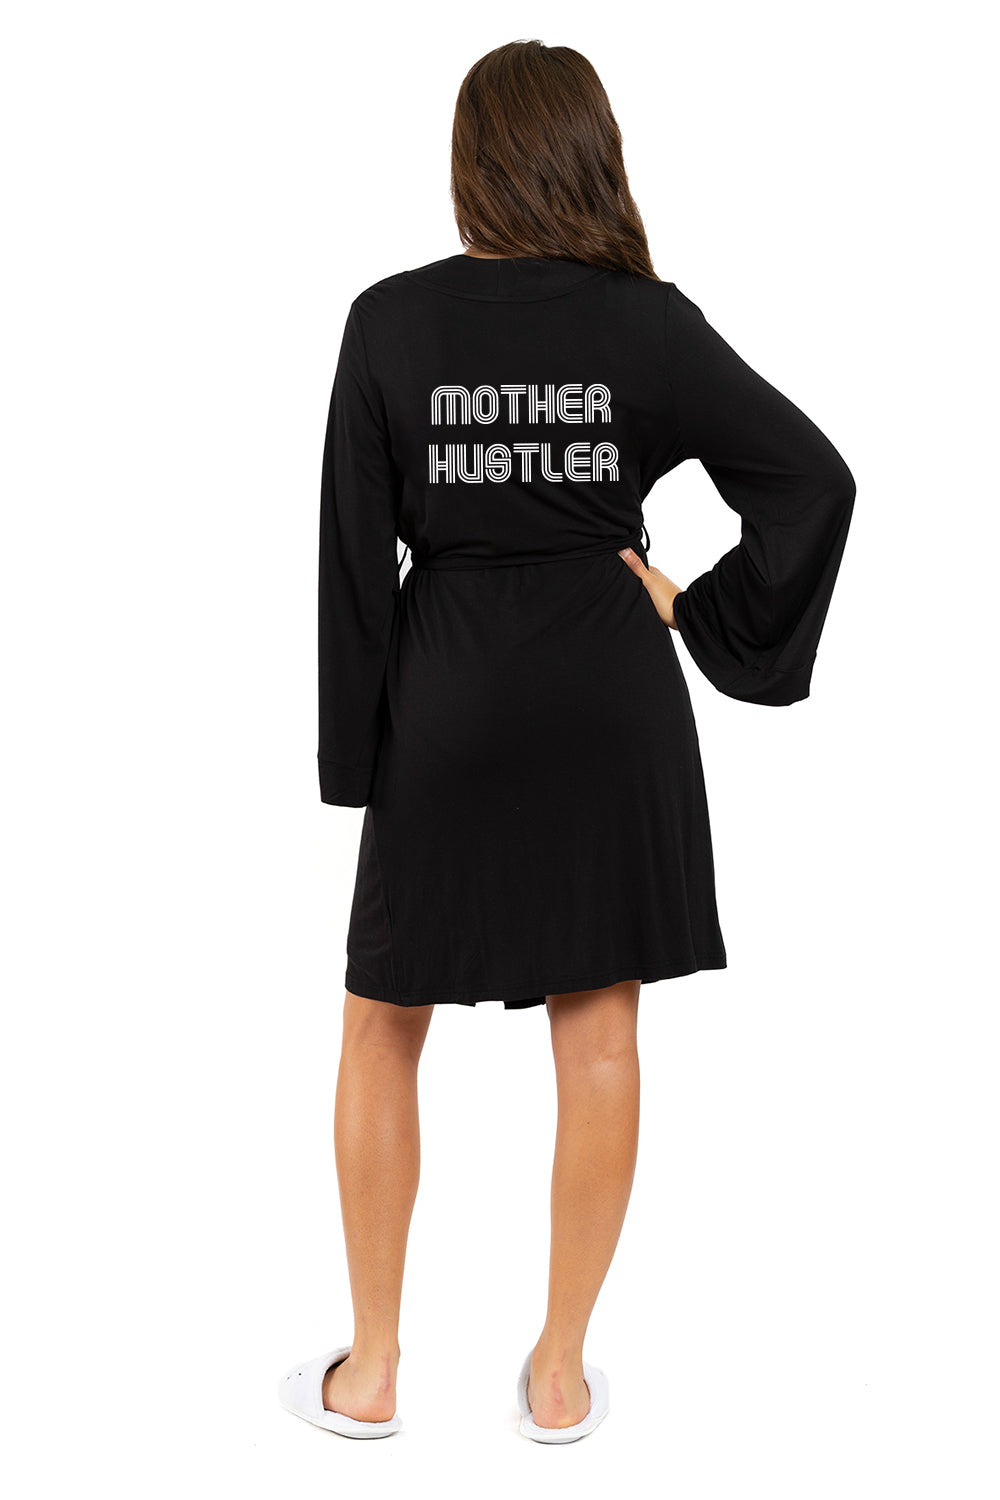 LIGHTWEIGHT ROBE - Mother Hustler